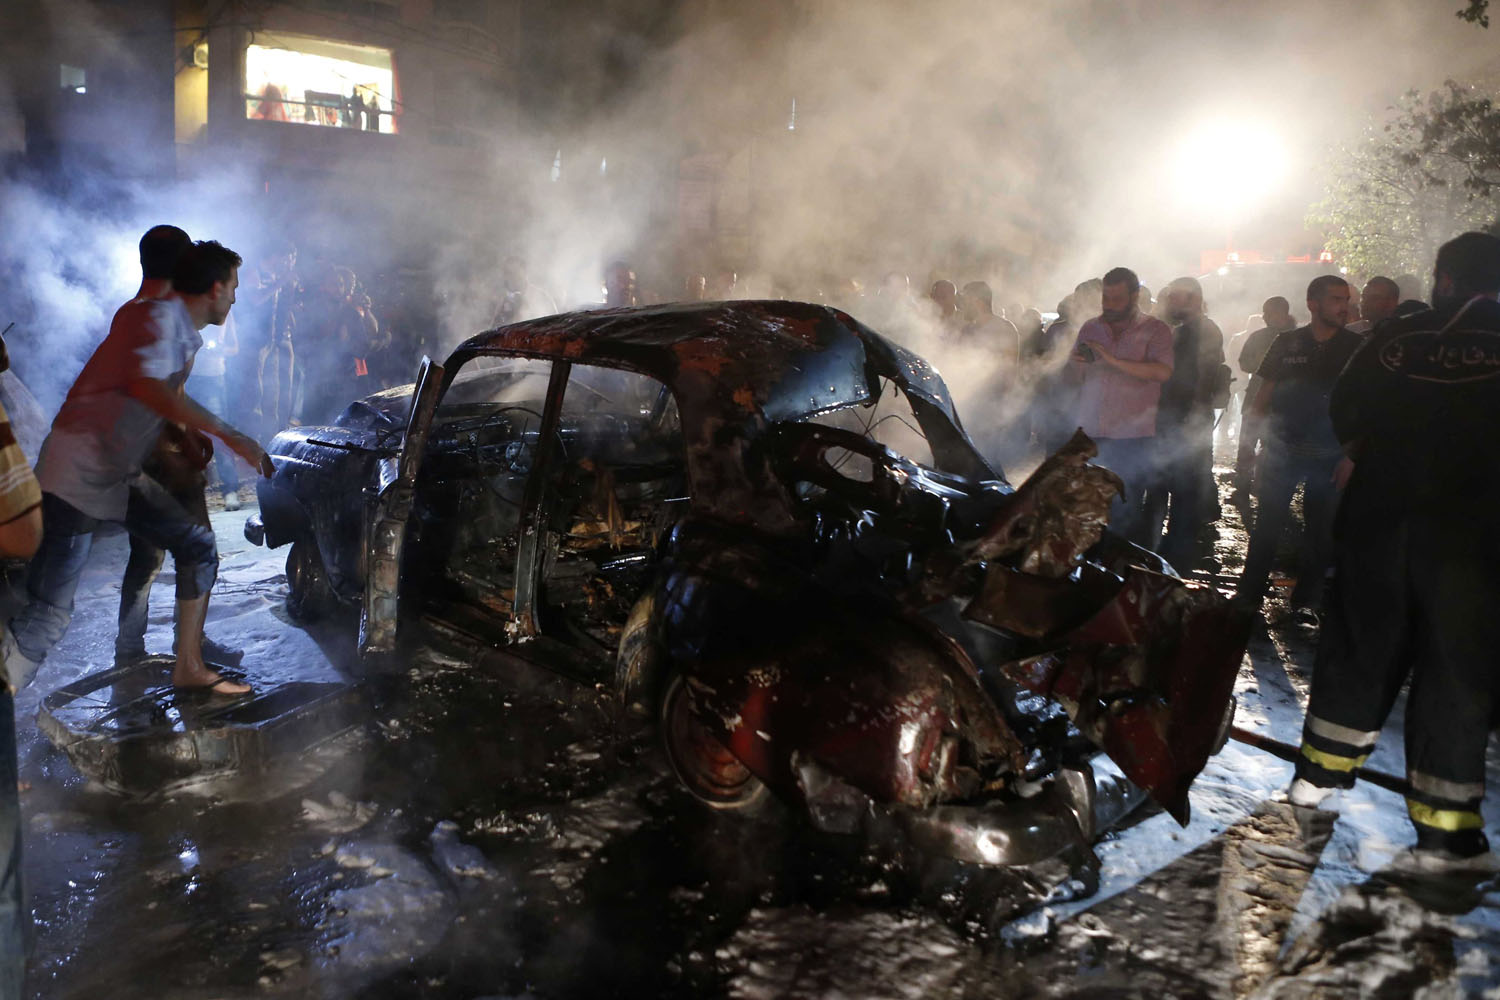 Jun. 23, 2014. People gather at the site of an explosion at the southern suburbs of the Lebanese capital Beirut. An explosion shook the southern suburbs of the Lebanese capital Beirut on Monday night, residents said.